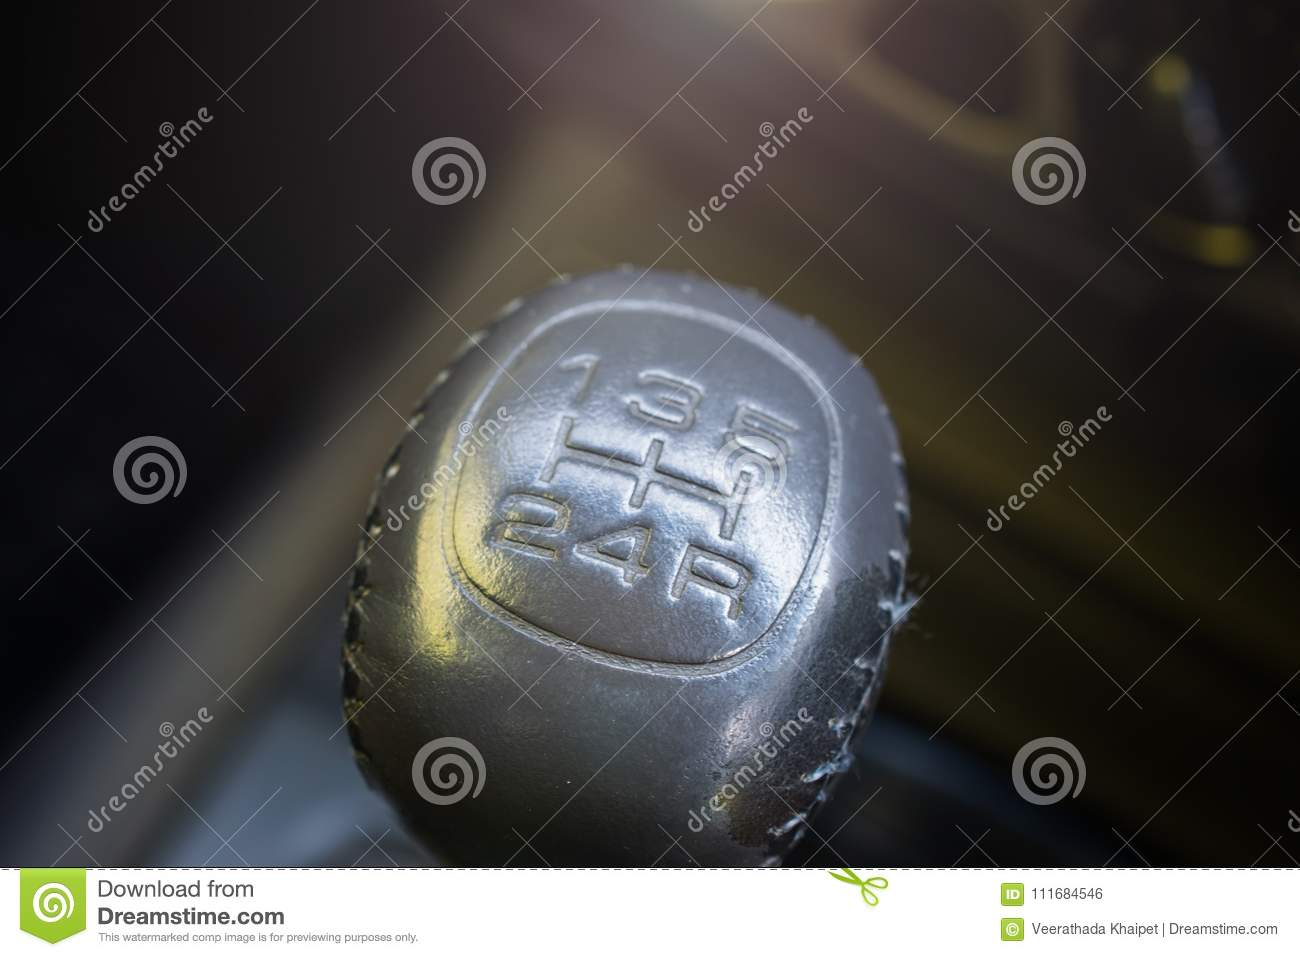 Close up view of a gear lever shift. Car interior